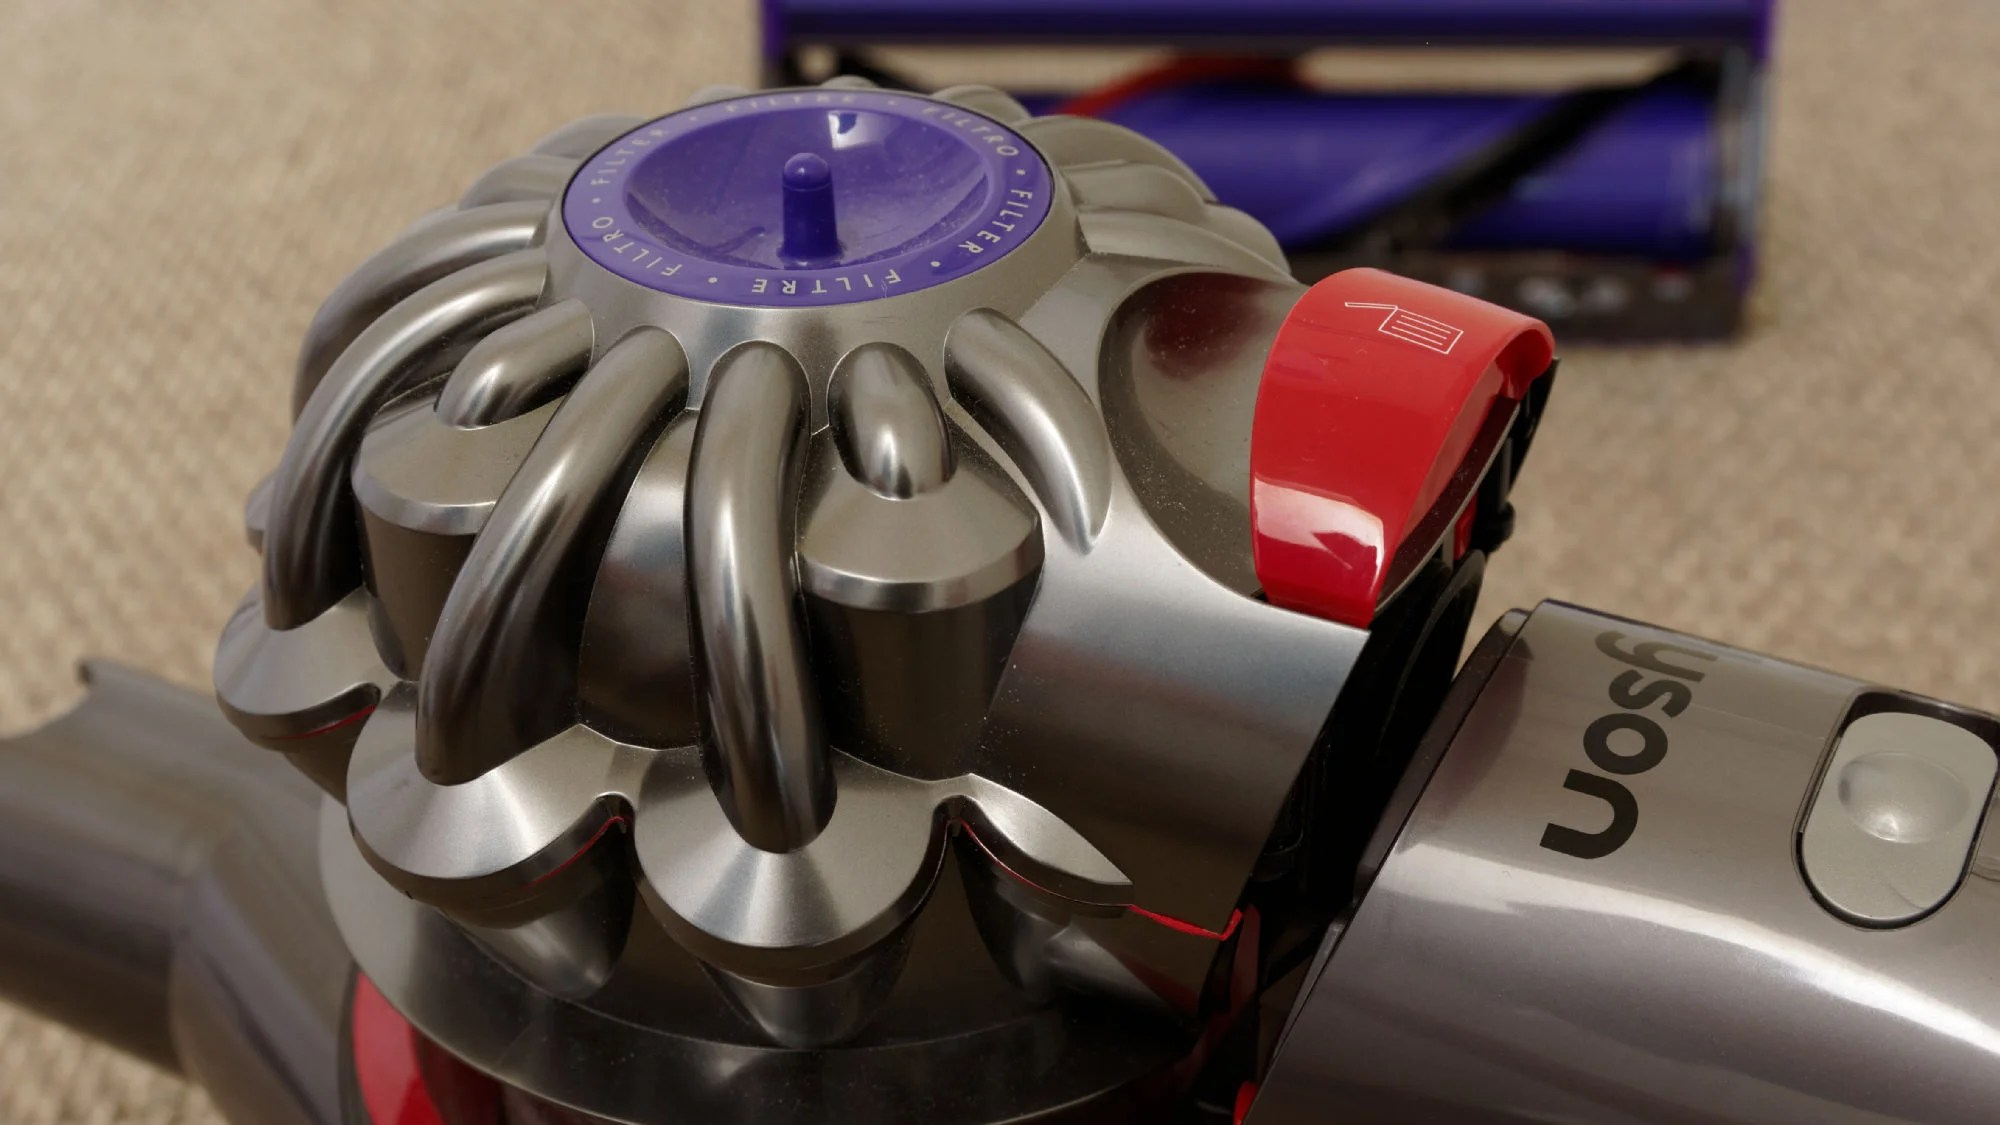 Dyson V8 Avis Dyson V8 Animal Review A Cheaper Alternative To The Cyclone V10